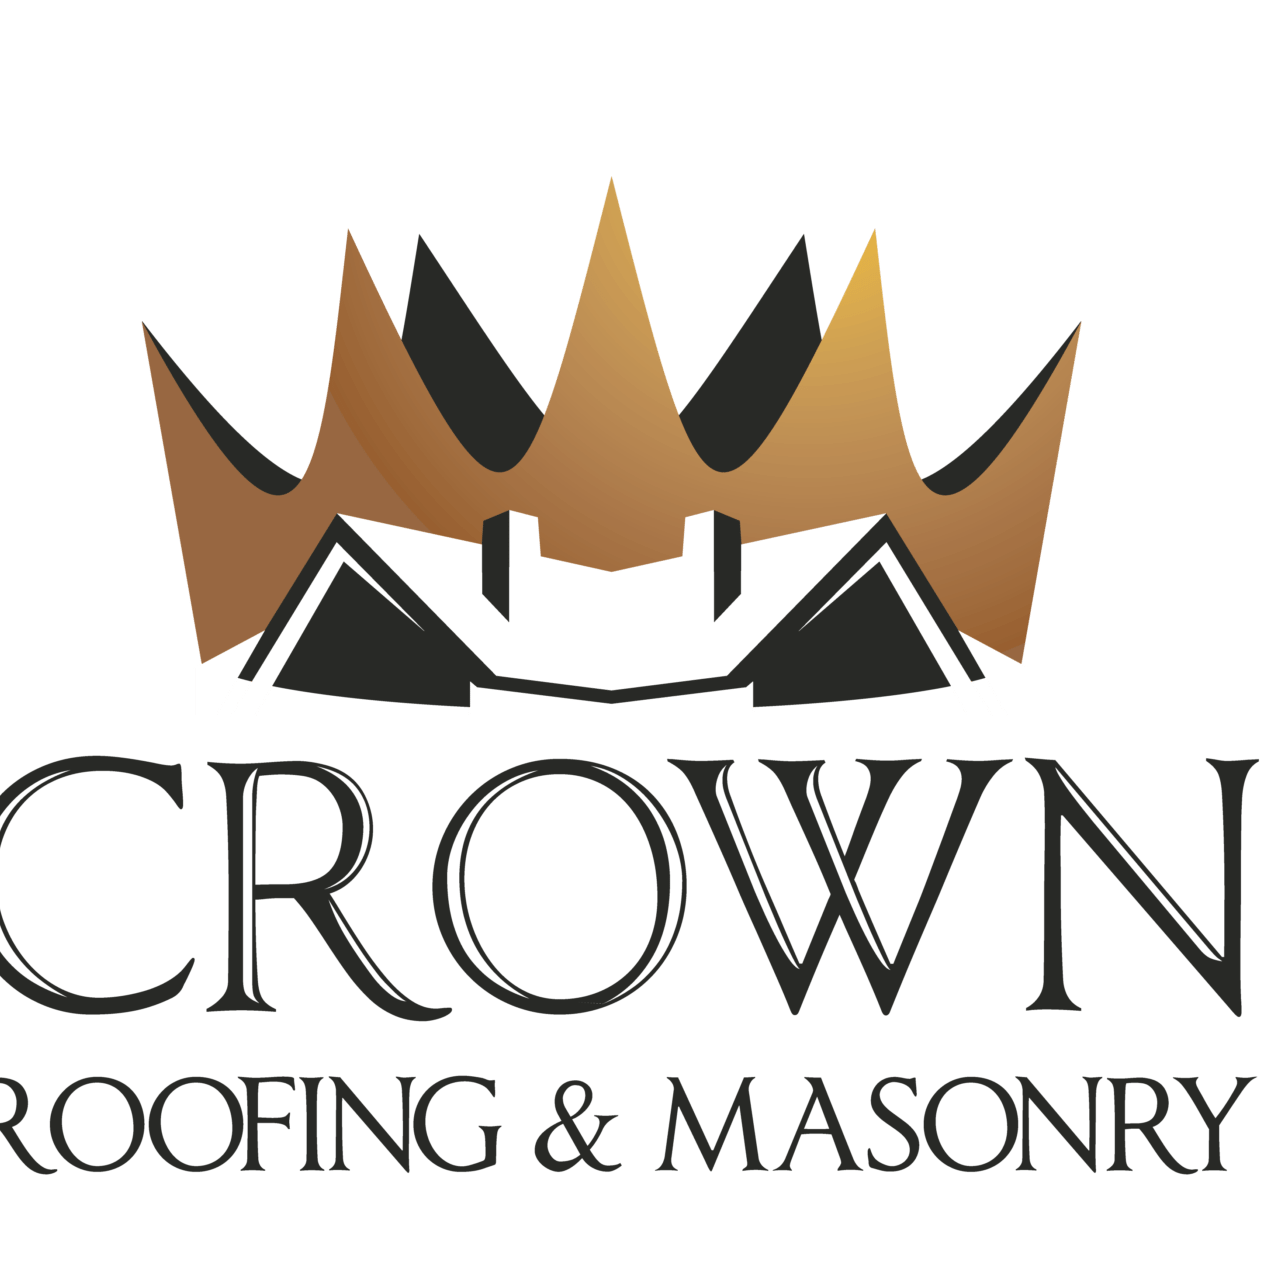 Crown Roofing & Masonry Co.